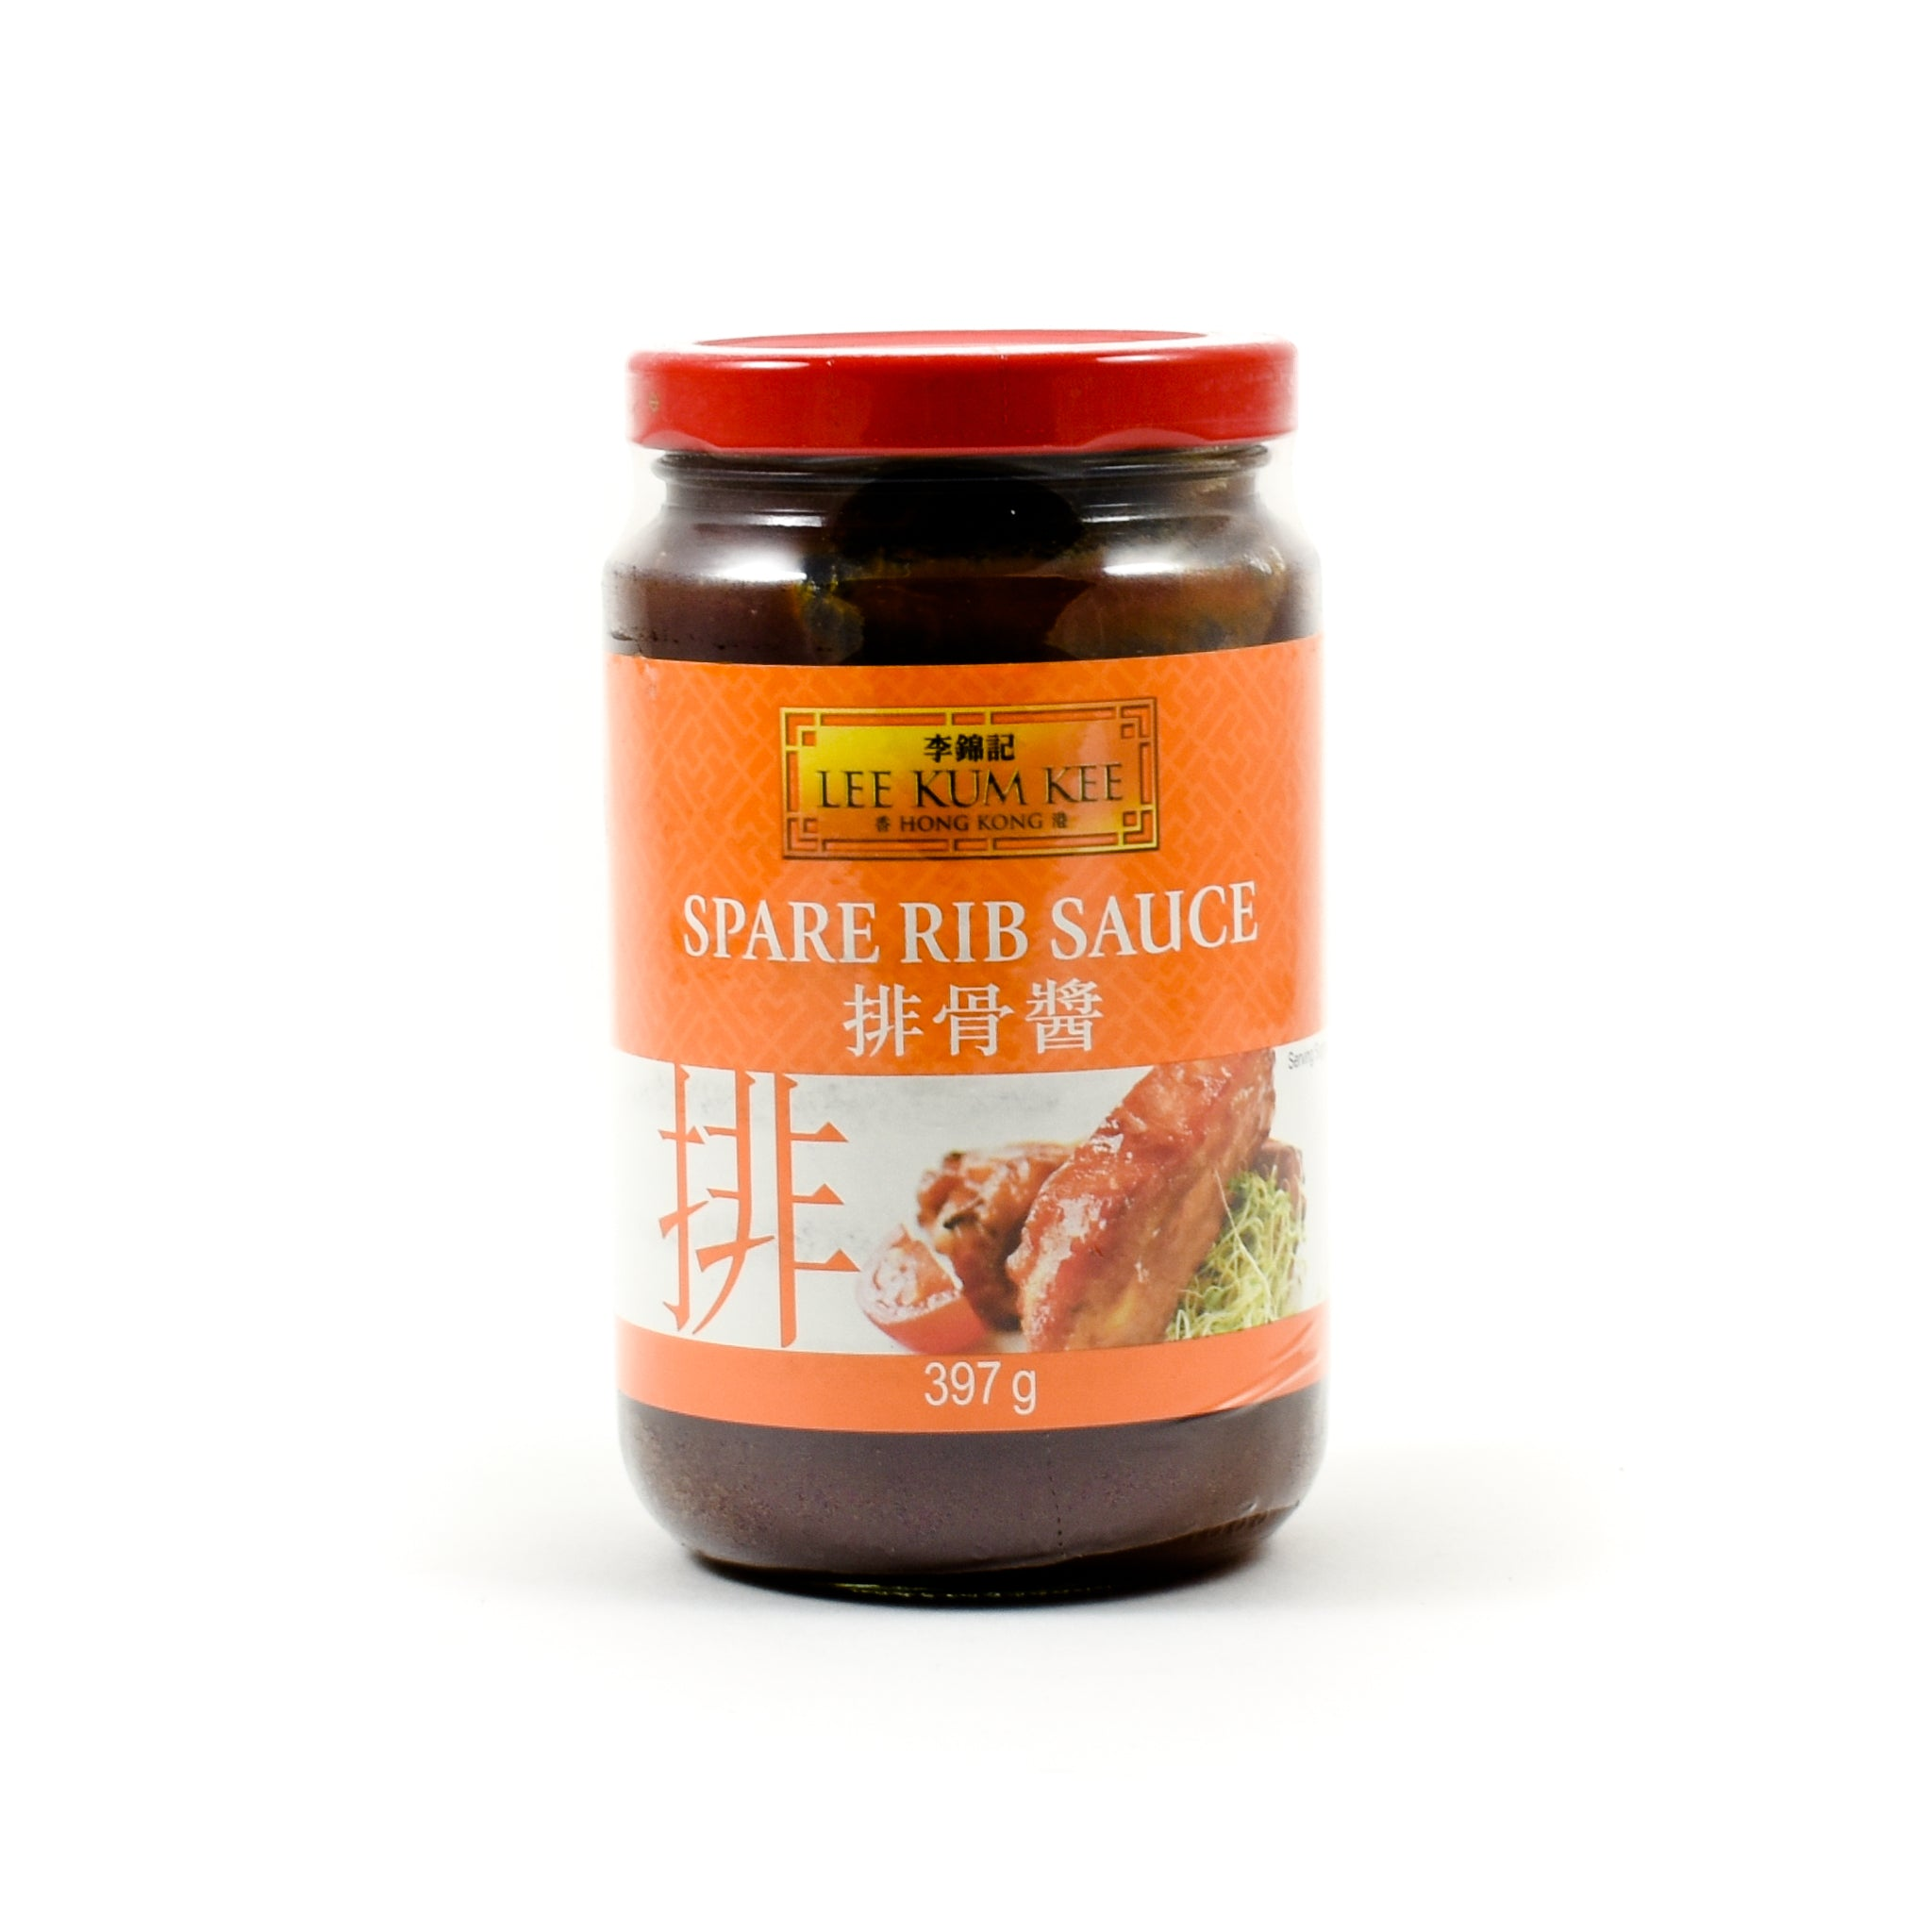 Lee Kum Kee Spare Rib Sauce 397g Ingredients Sauces & Condiments Asian Sauces & Condiments Chinese Food